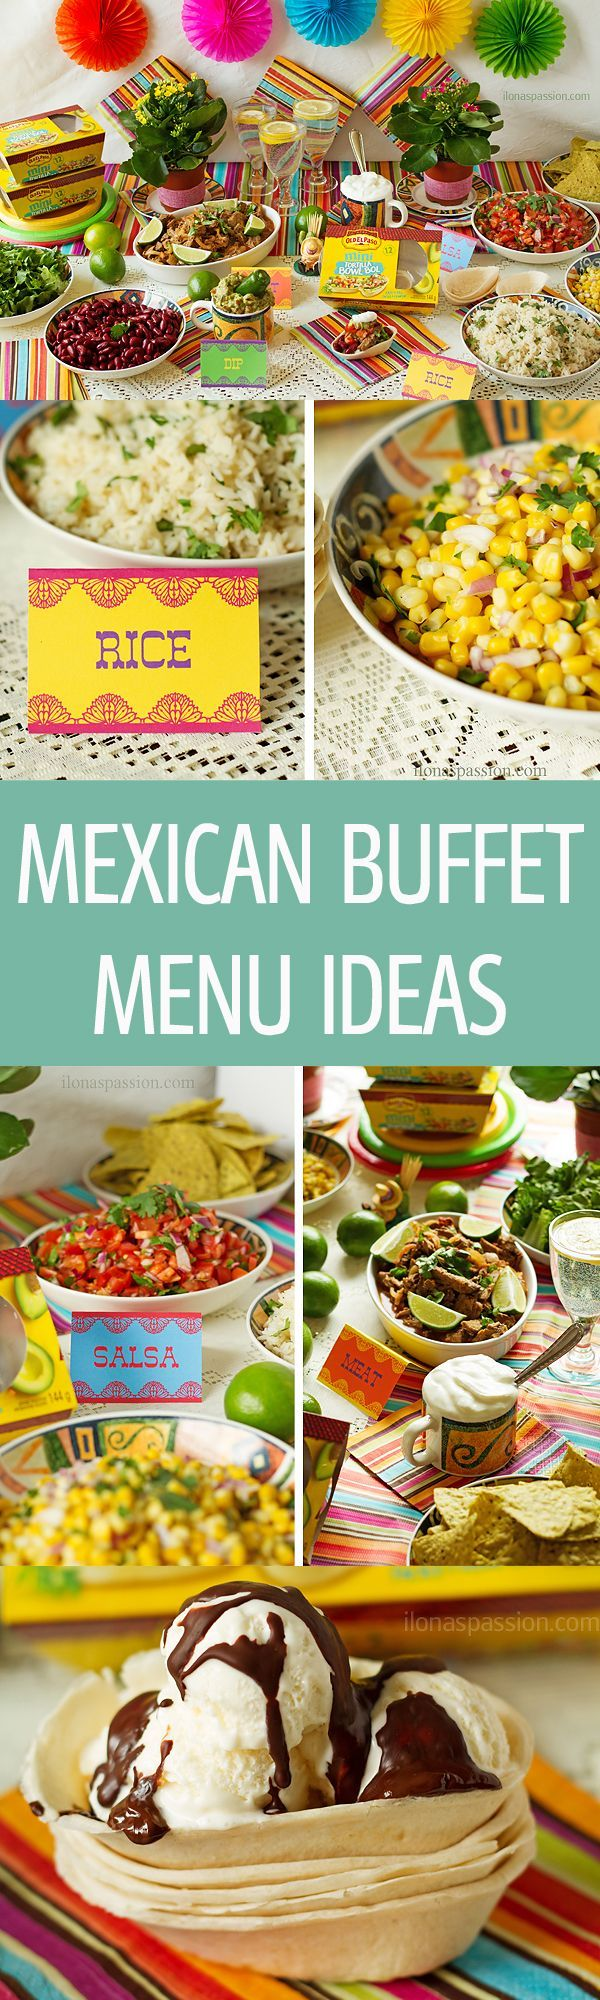 Mexican Buffet Menu Ideas - full Mexican buffet menu ideas with recipes like barbacoa, lime cilantro rice, avocado dip, beans, tortilla bowls, corn and homemade salsa. Free Mexican printable table tents included! by ilonaspassion.com I @Ilona's Passion #CreateYourBowl #ad